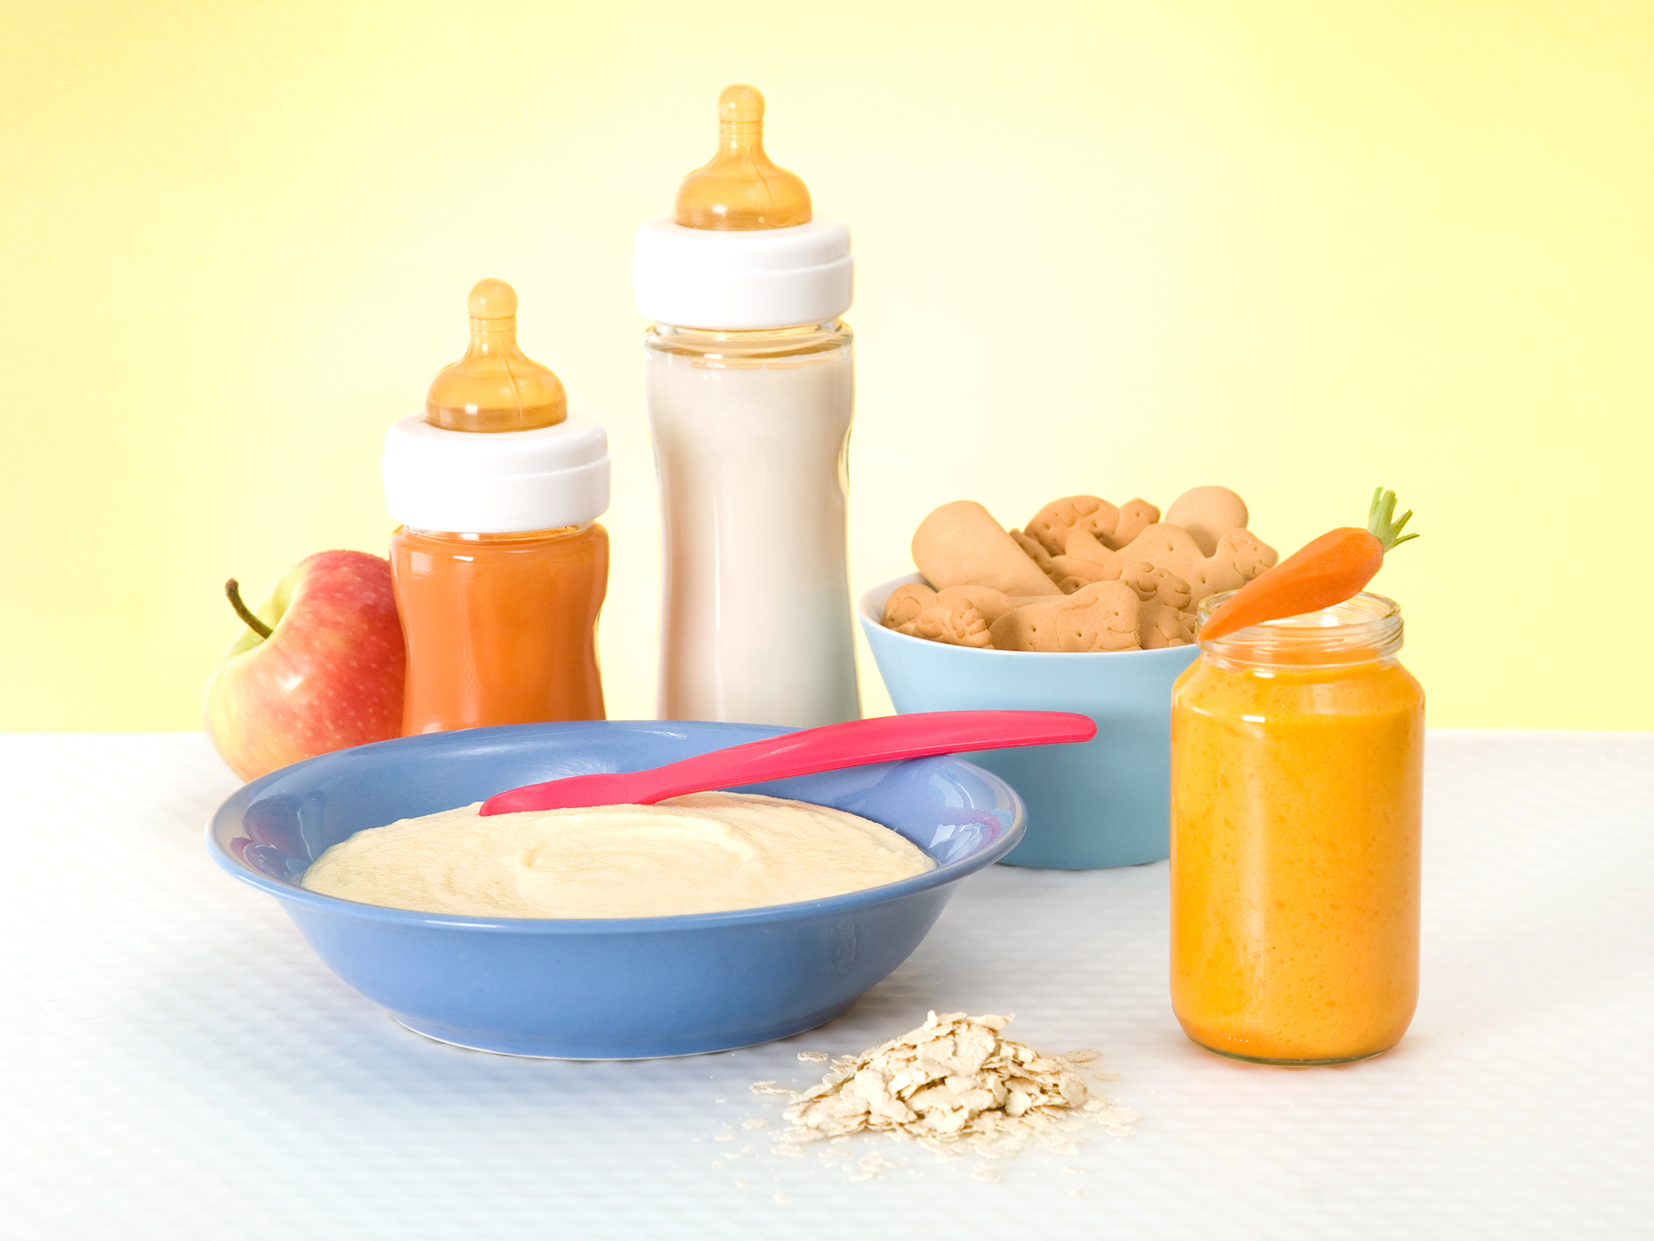 India Baby food industry, India Baby Food Market Recent Trends,Baby Care market Size